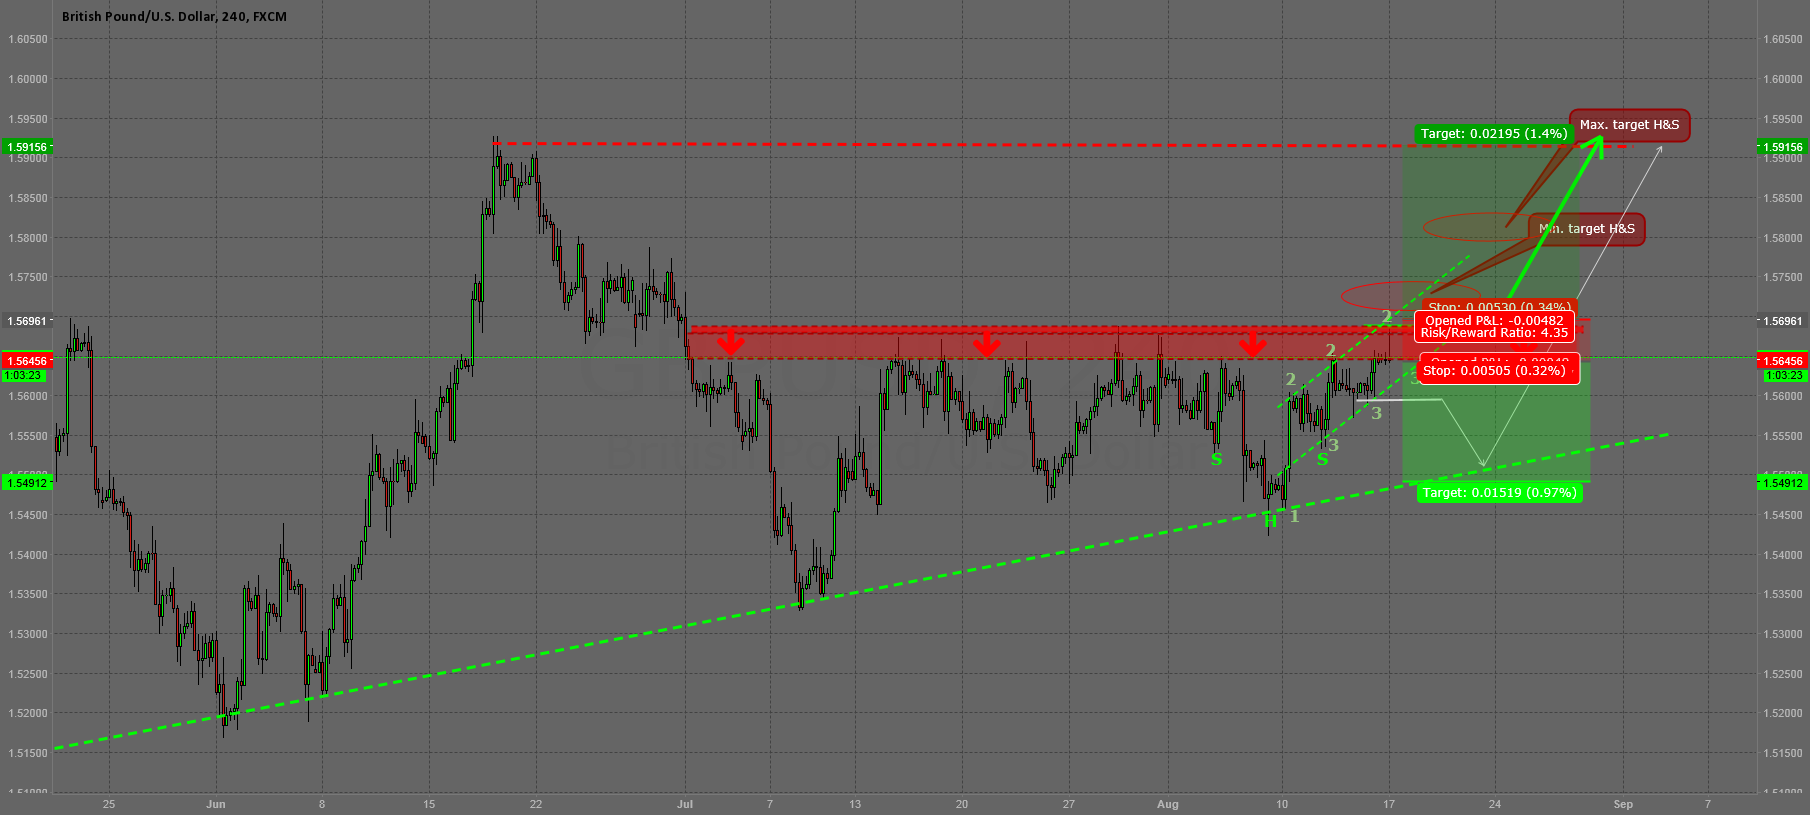 Update: GBPUSD reached Selling Zone / Breakout Zone